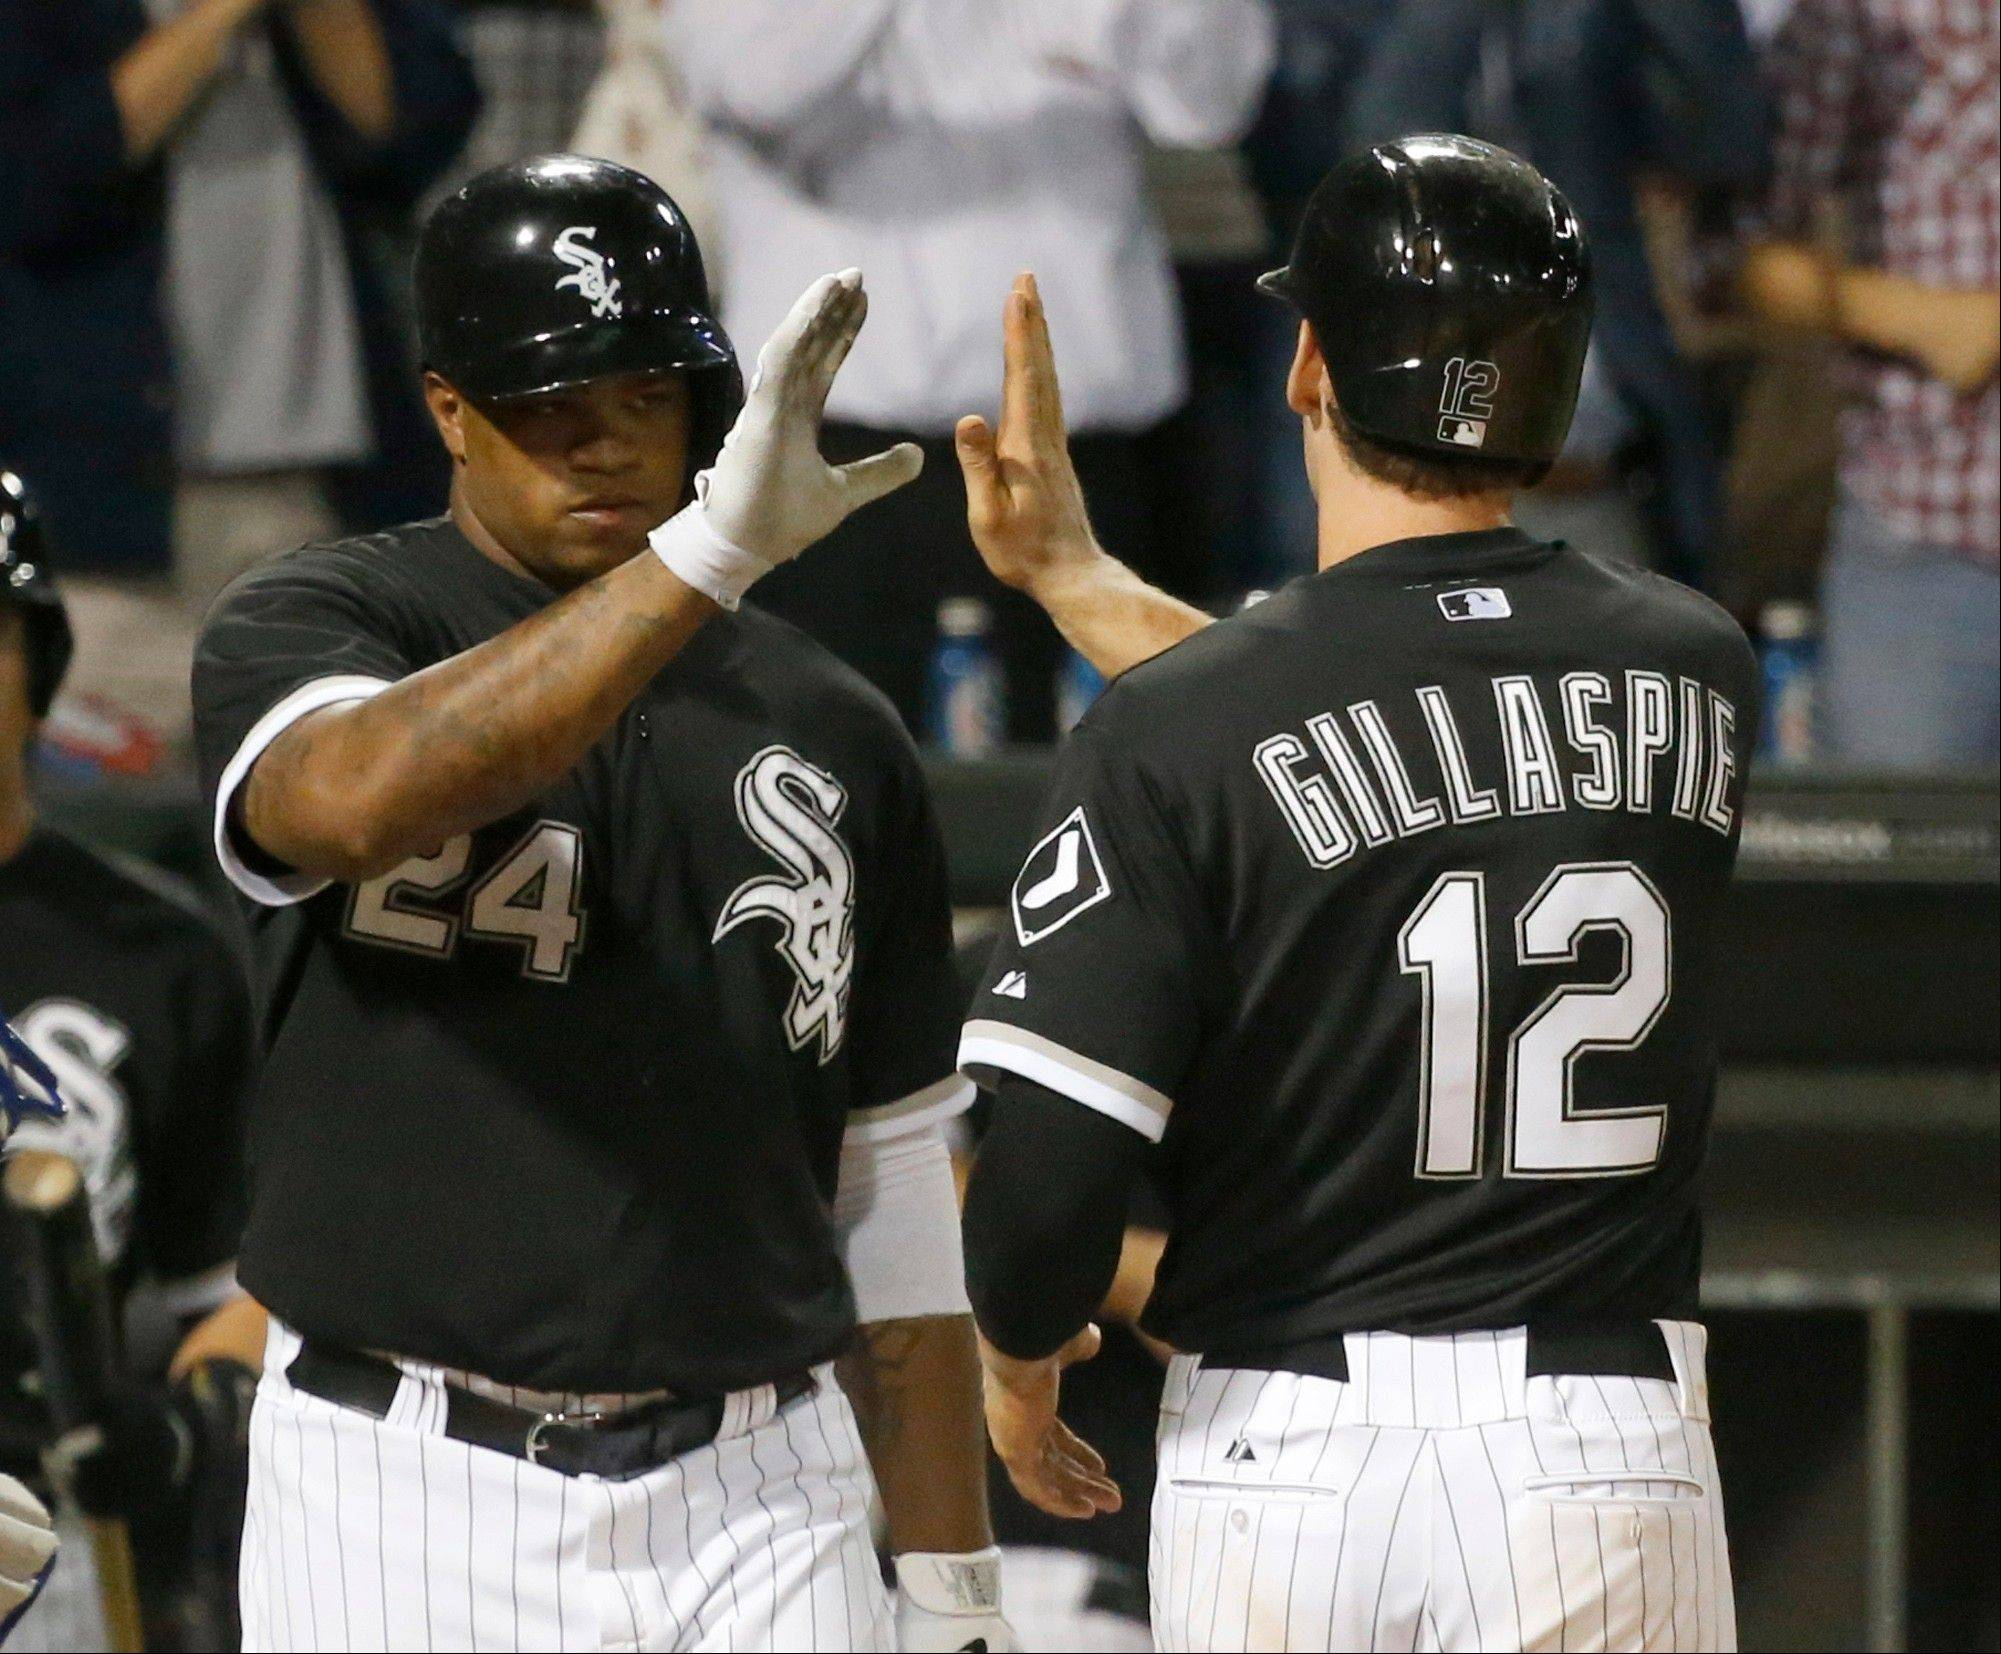 Chicago White Sox's Dayan Viciedo (24) greets teammate Conor Gillaspie outside the dugout after Gillaspie's home run off Kansas City Royals relief pitcher Kelvin Herrera during the eighth inning of a baseball game on Friday, July 26, 2013, in Chicago. (AP Photo/Charles Rex Arbogast)